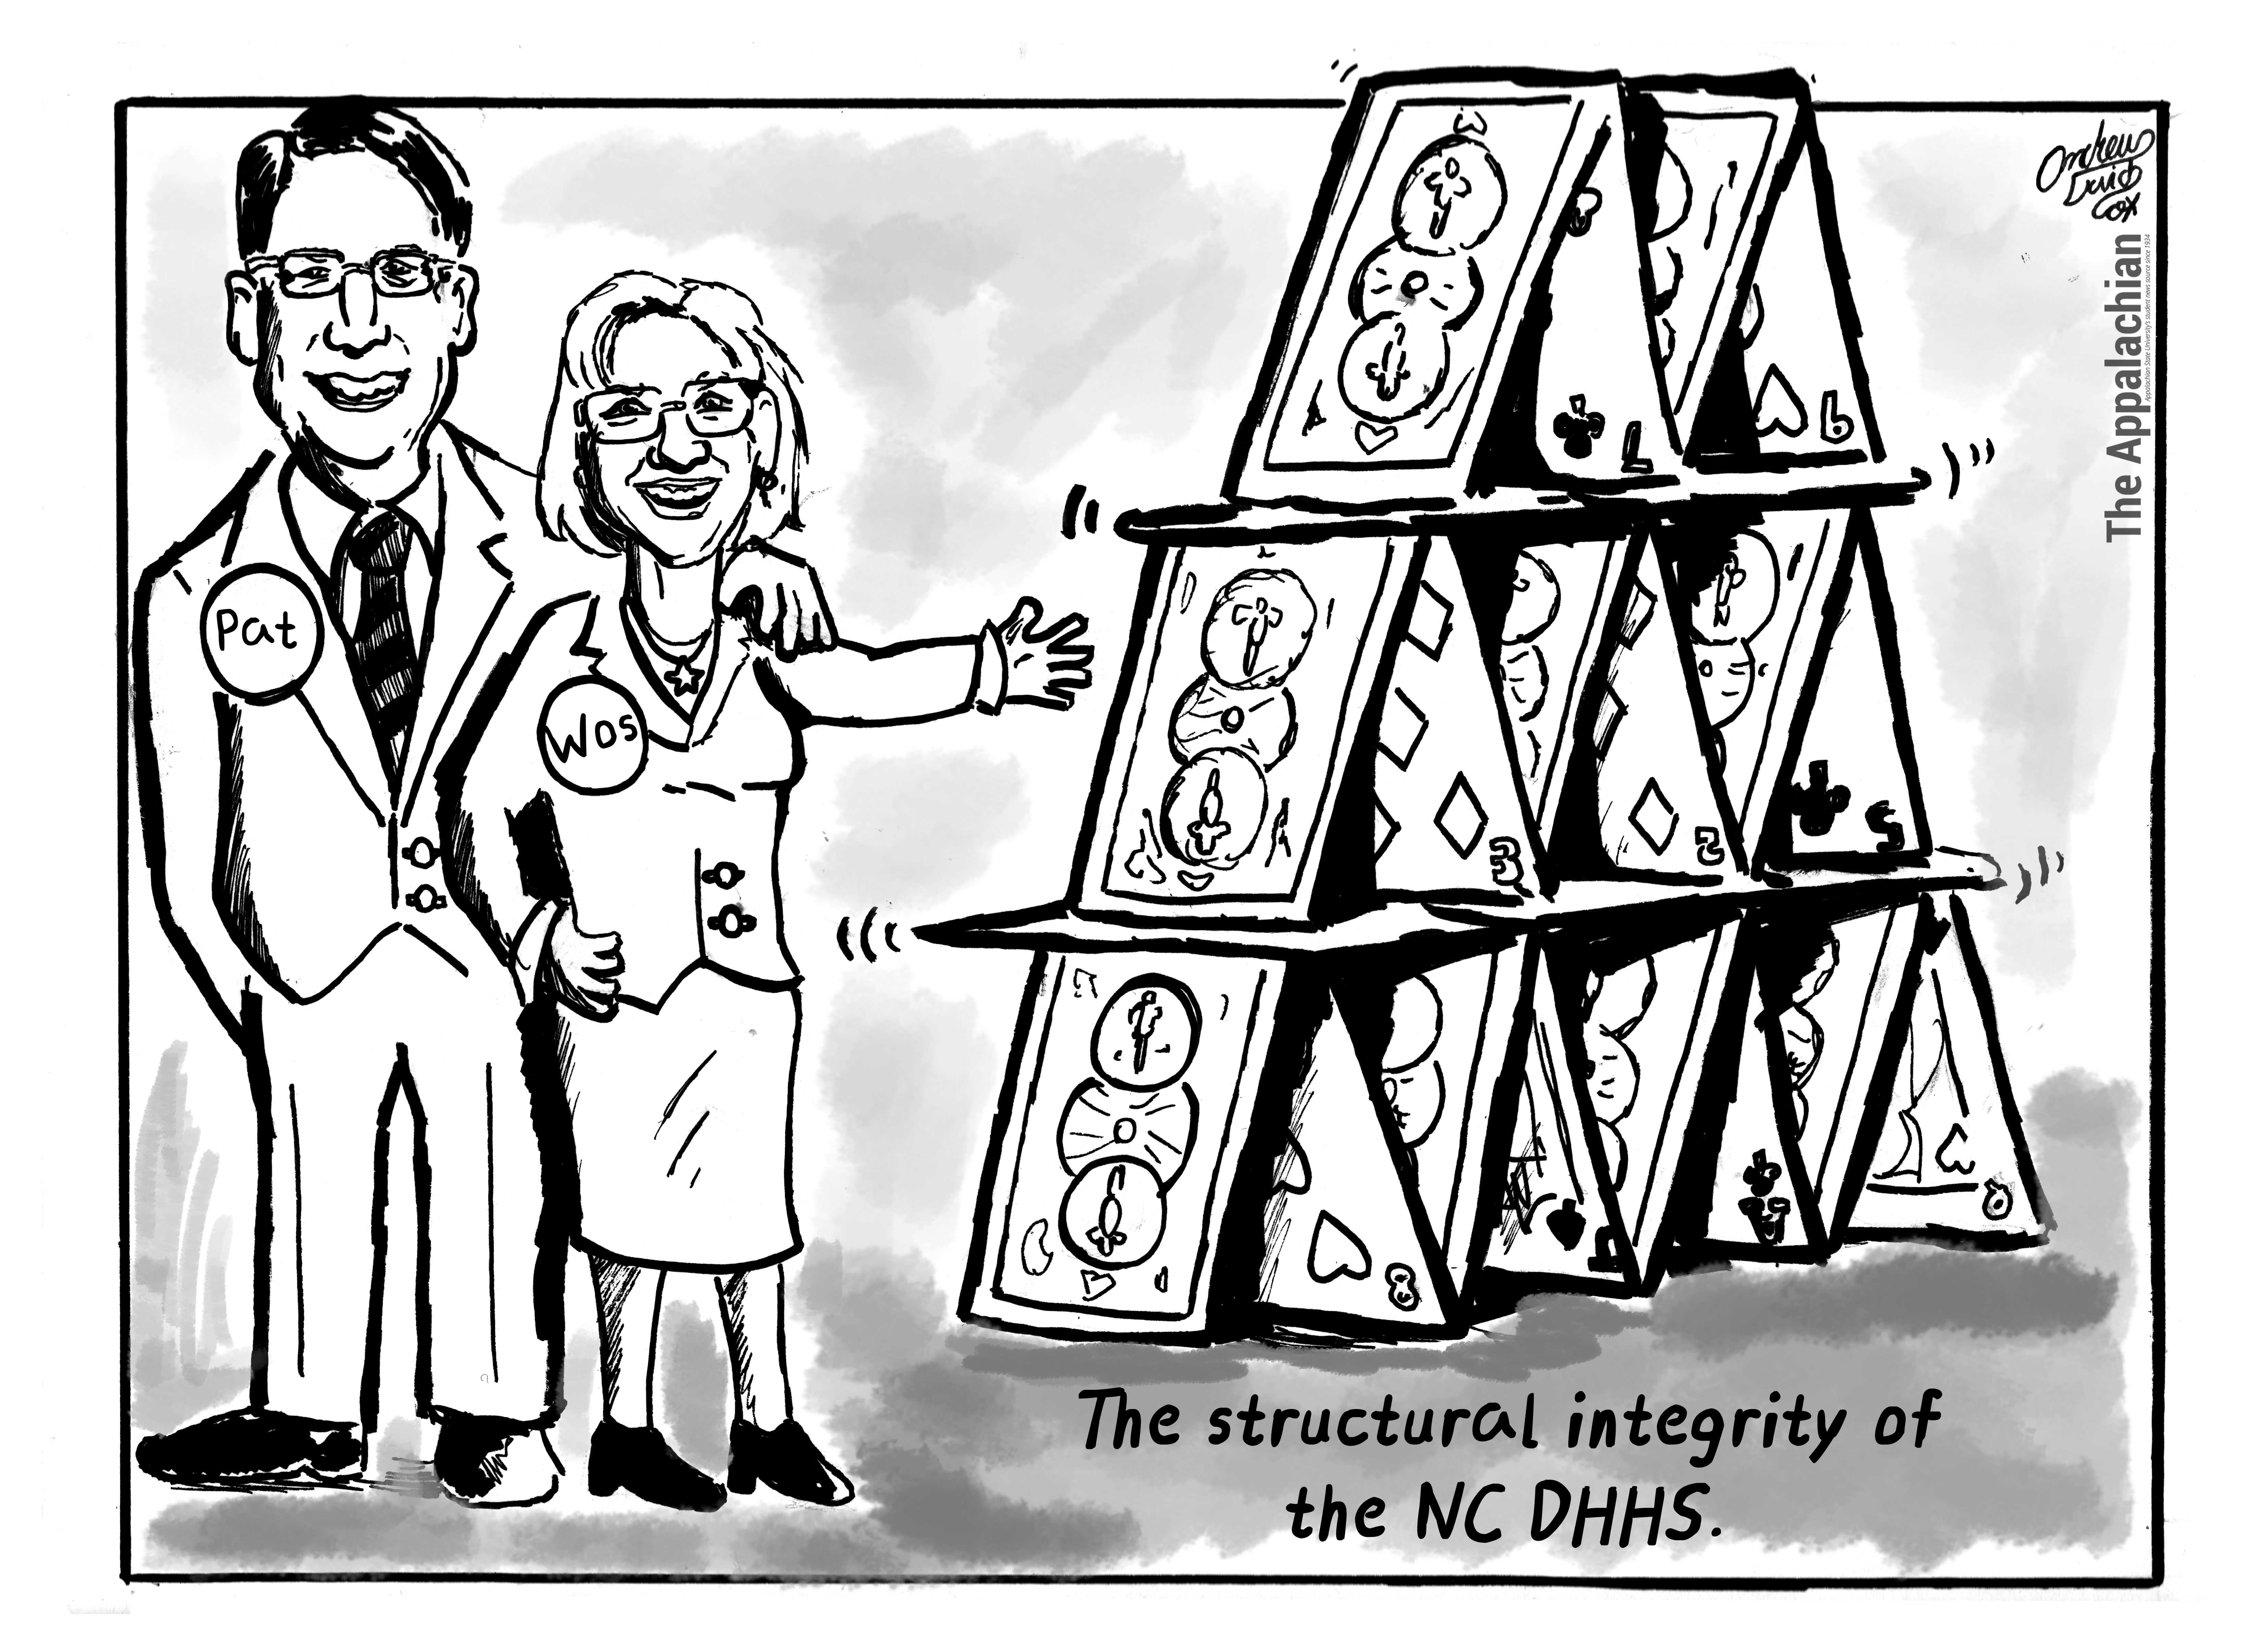 NC DHHS becoming a house of cards under Wos